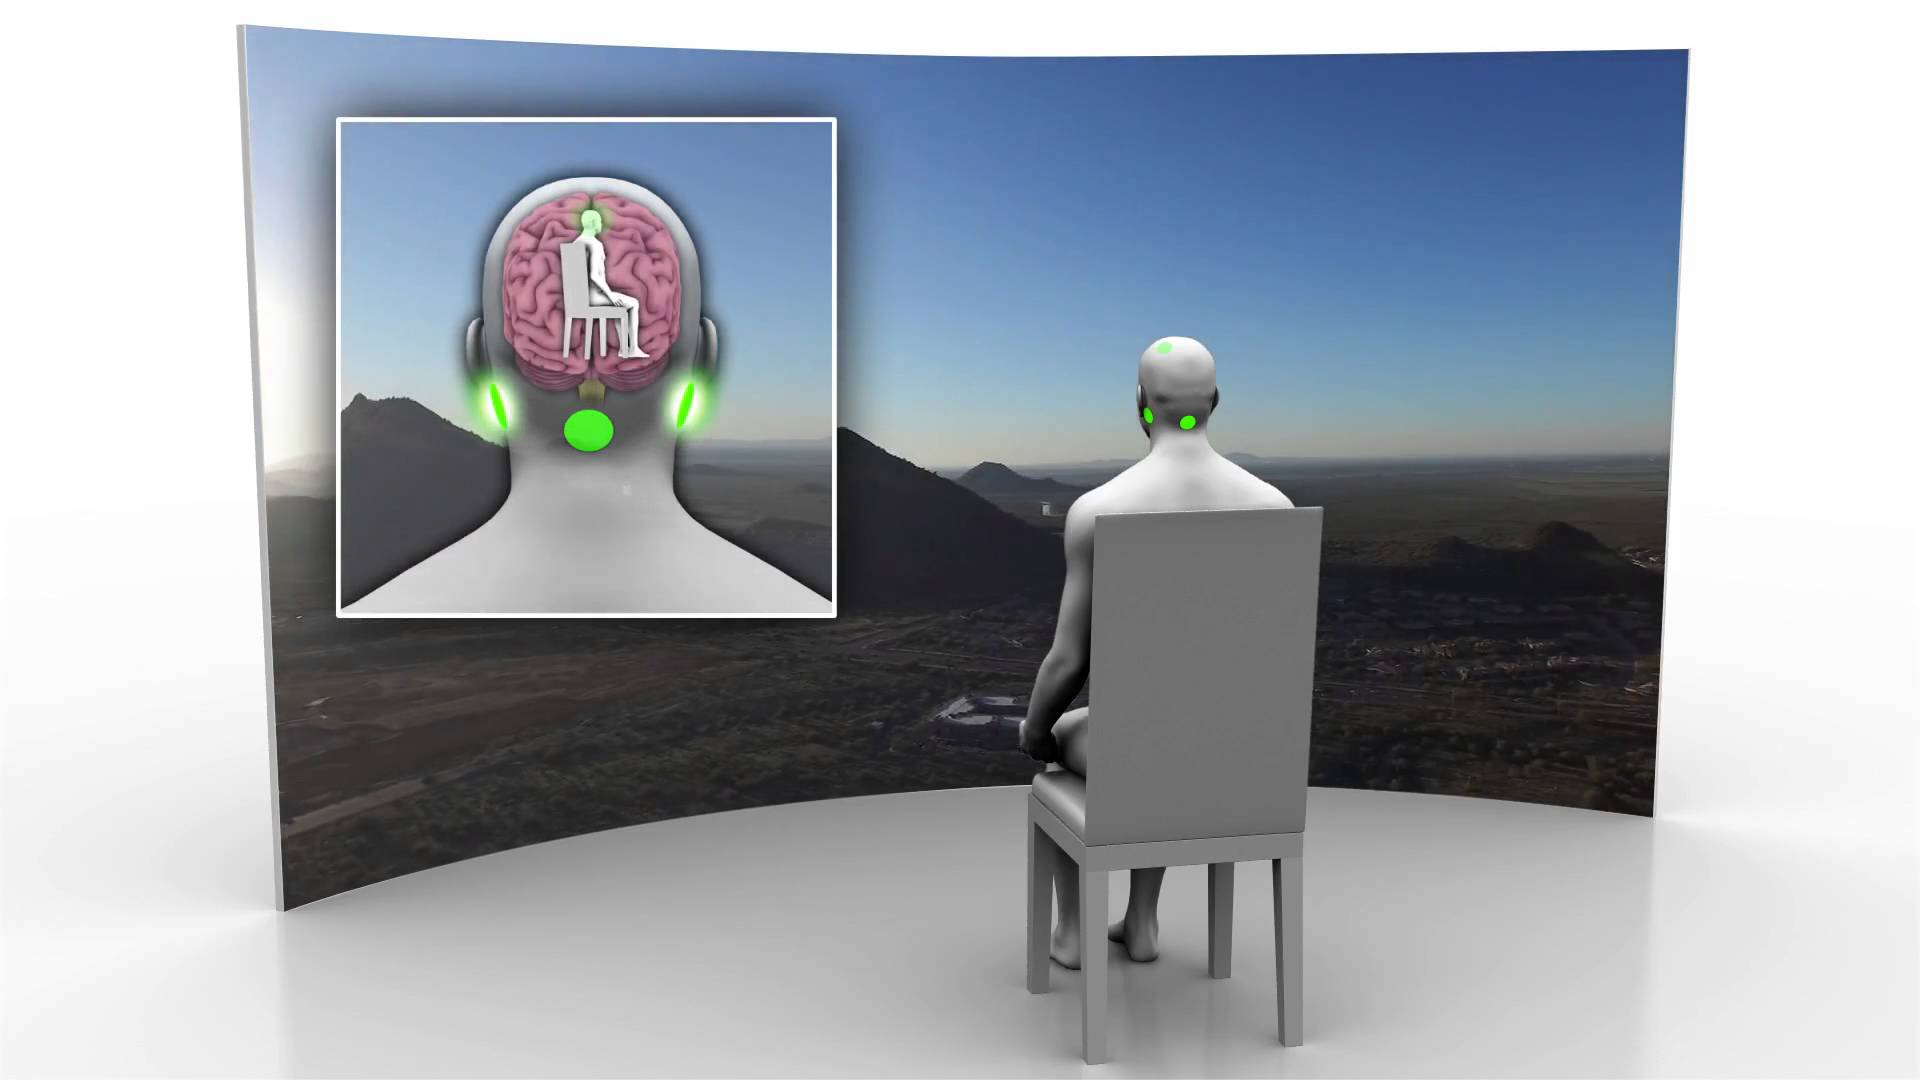 Mind Blowing New Technologies Coming to AR/VR